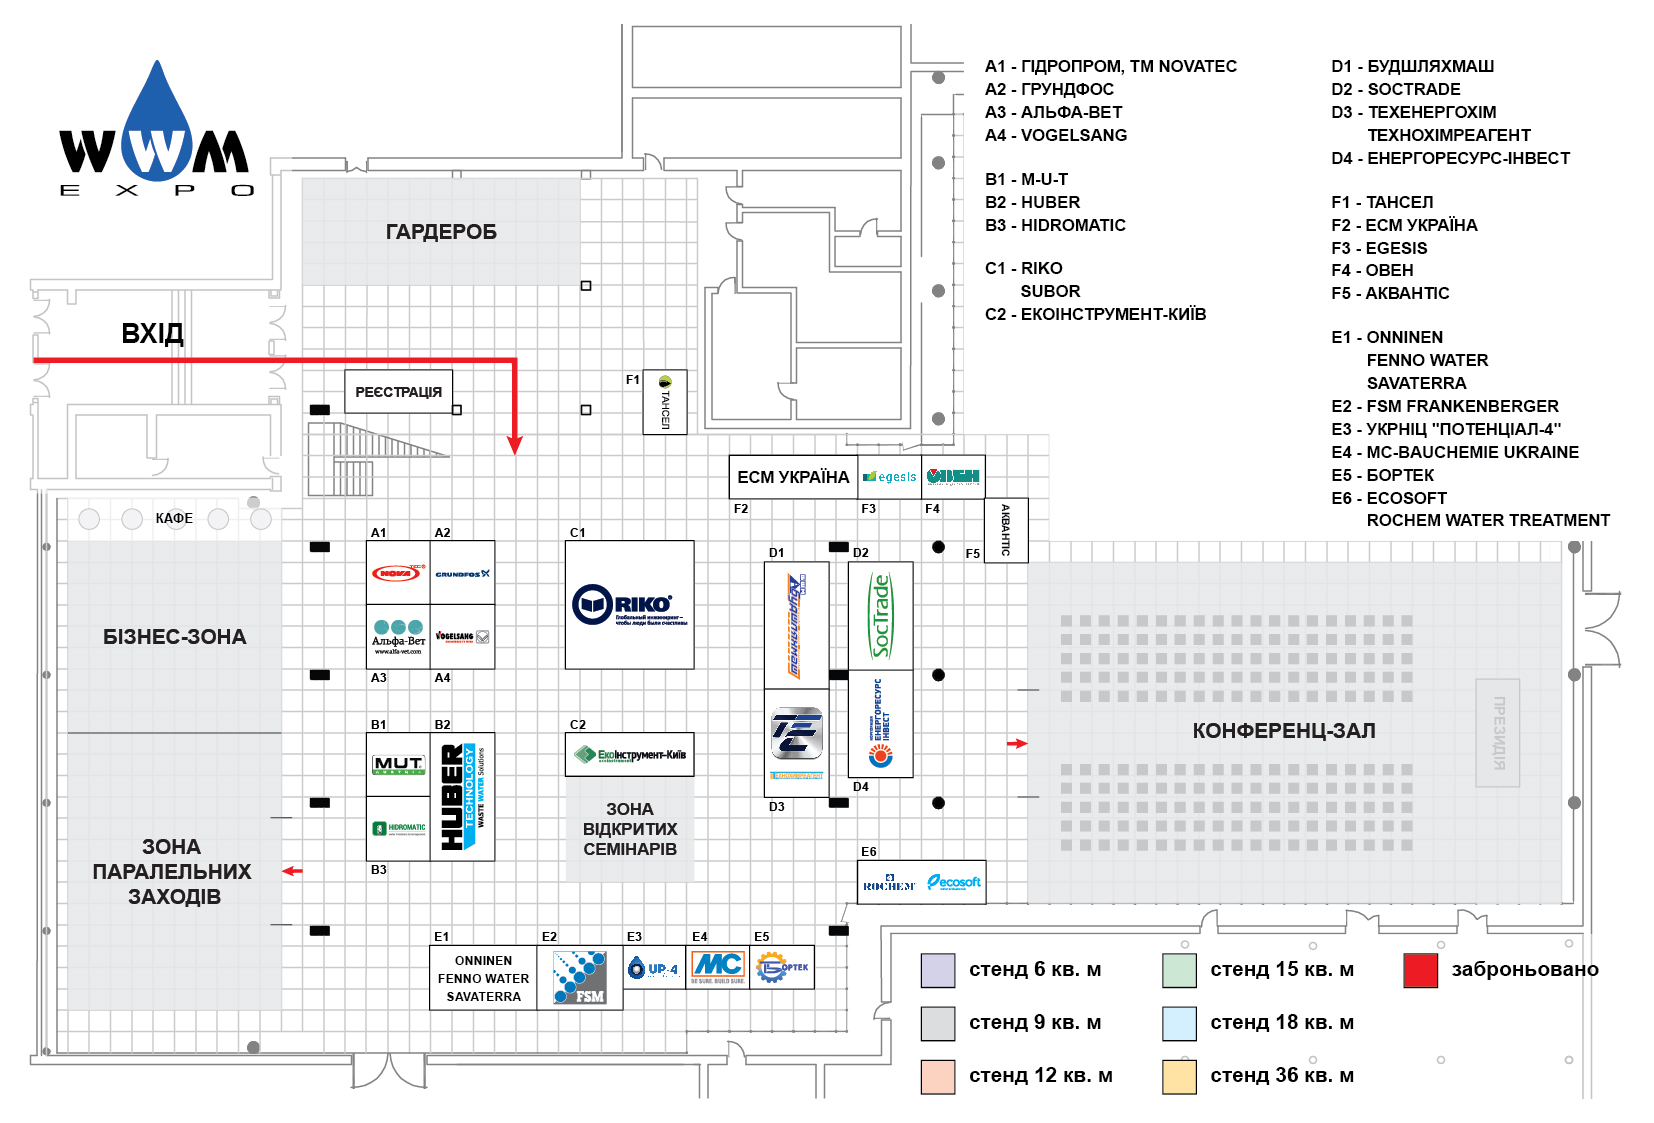 Exhibition plan ACCO WWM 2019 ua